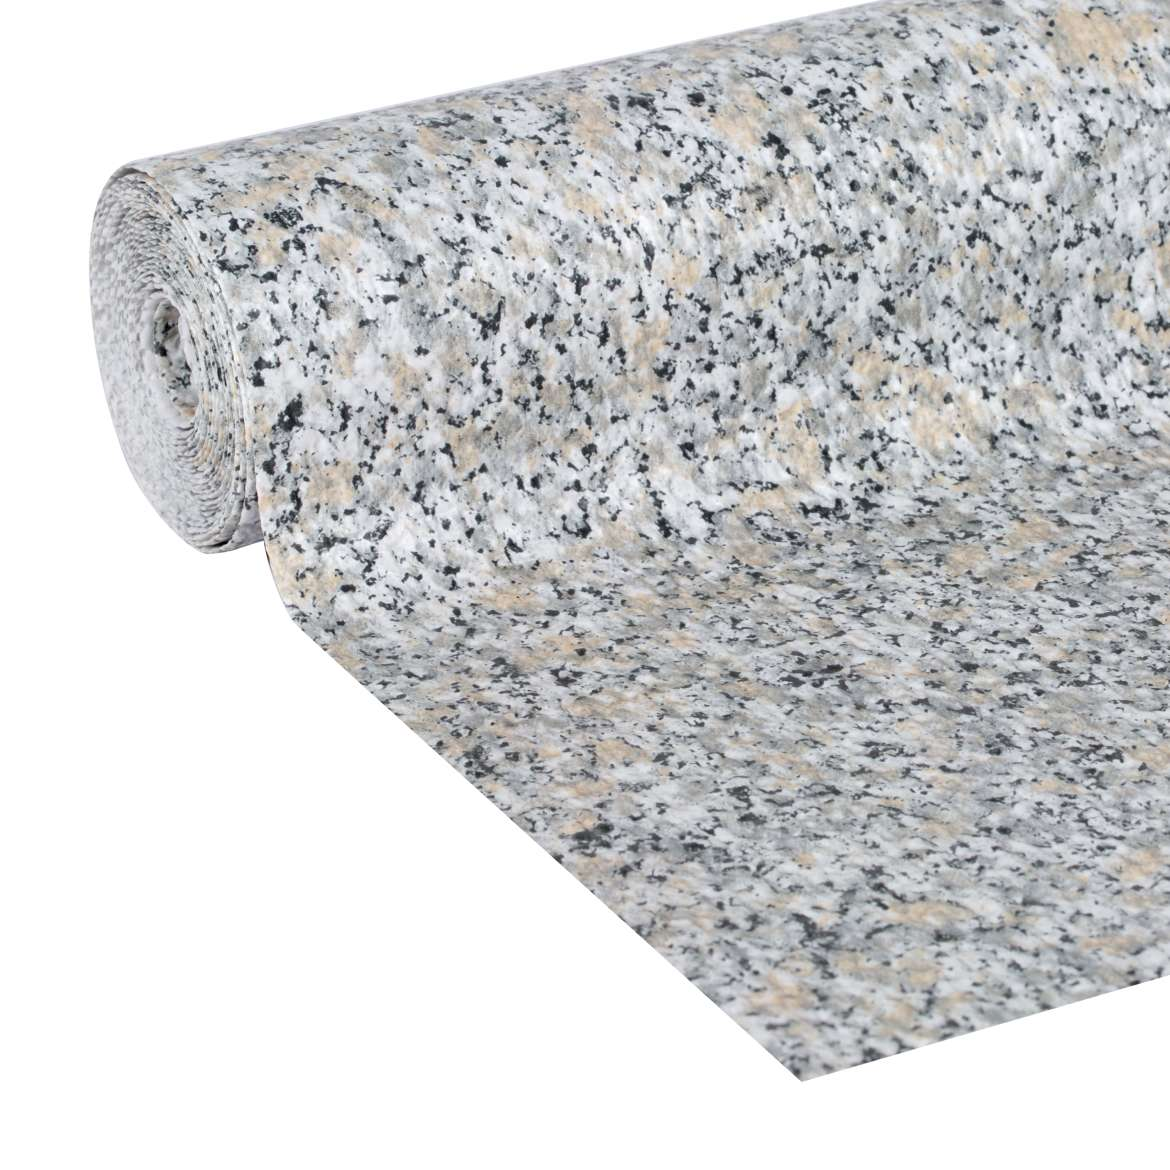 "Duck Brand Smooth Top Easy Shelf Liner, 12"" x 10', Grey Granite"